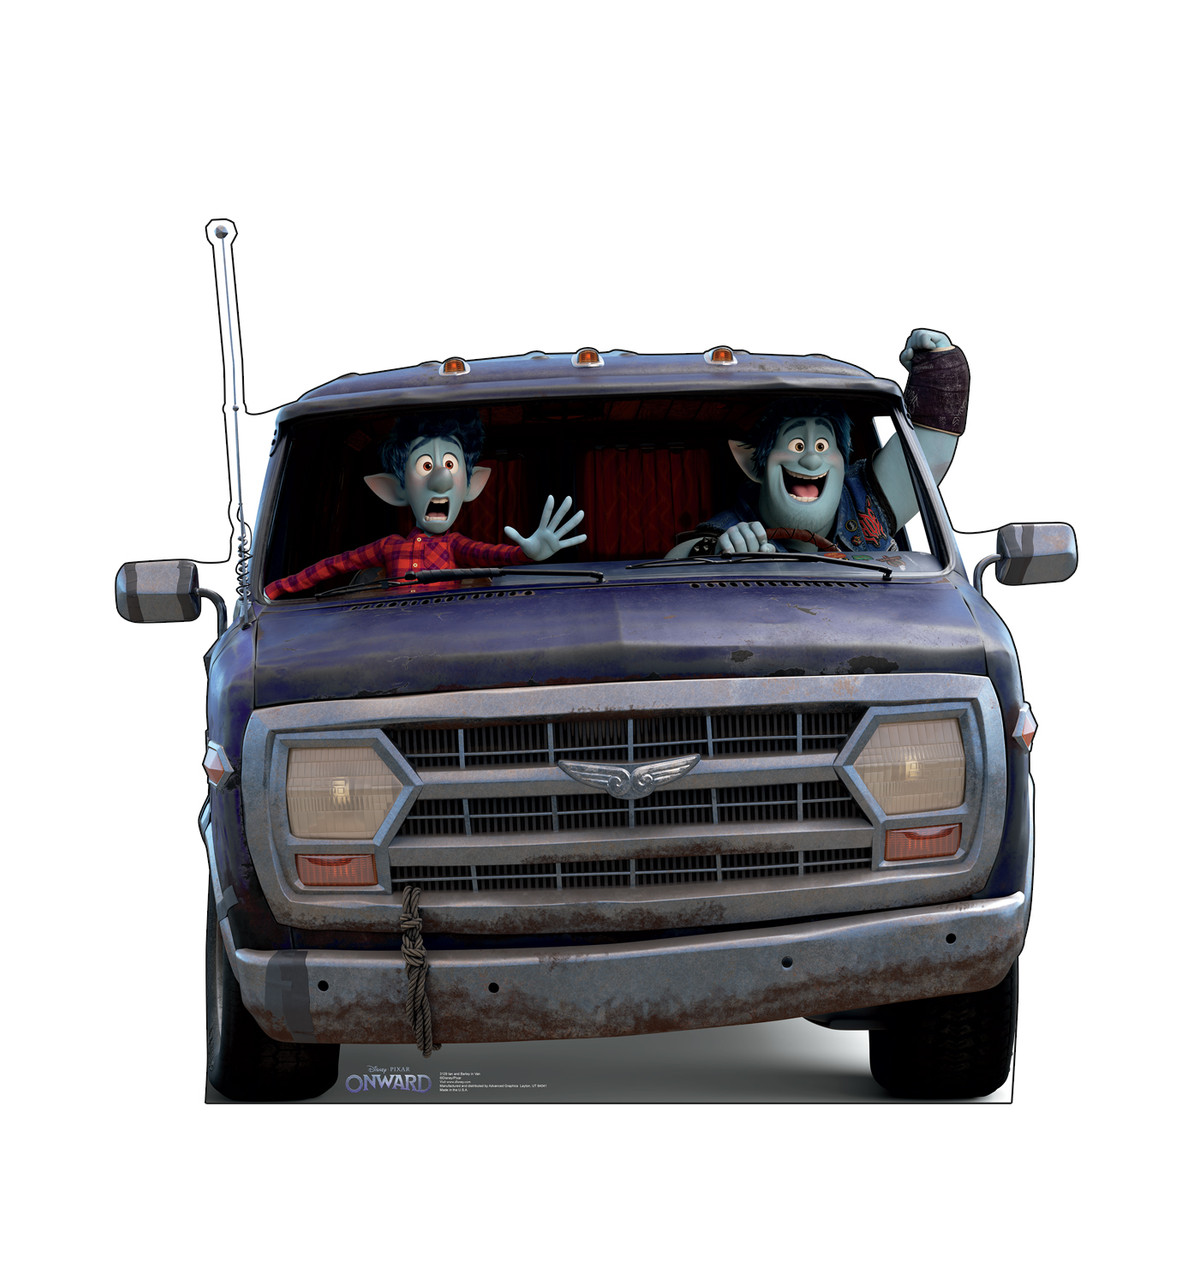 Life-size cardboard standee of Ian and Barley in Van from Disney/Pixar's film Onward.